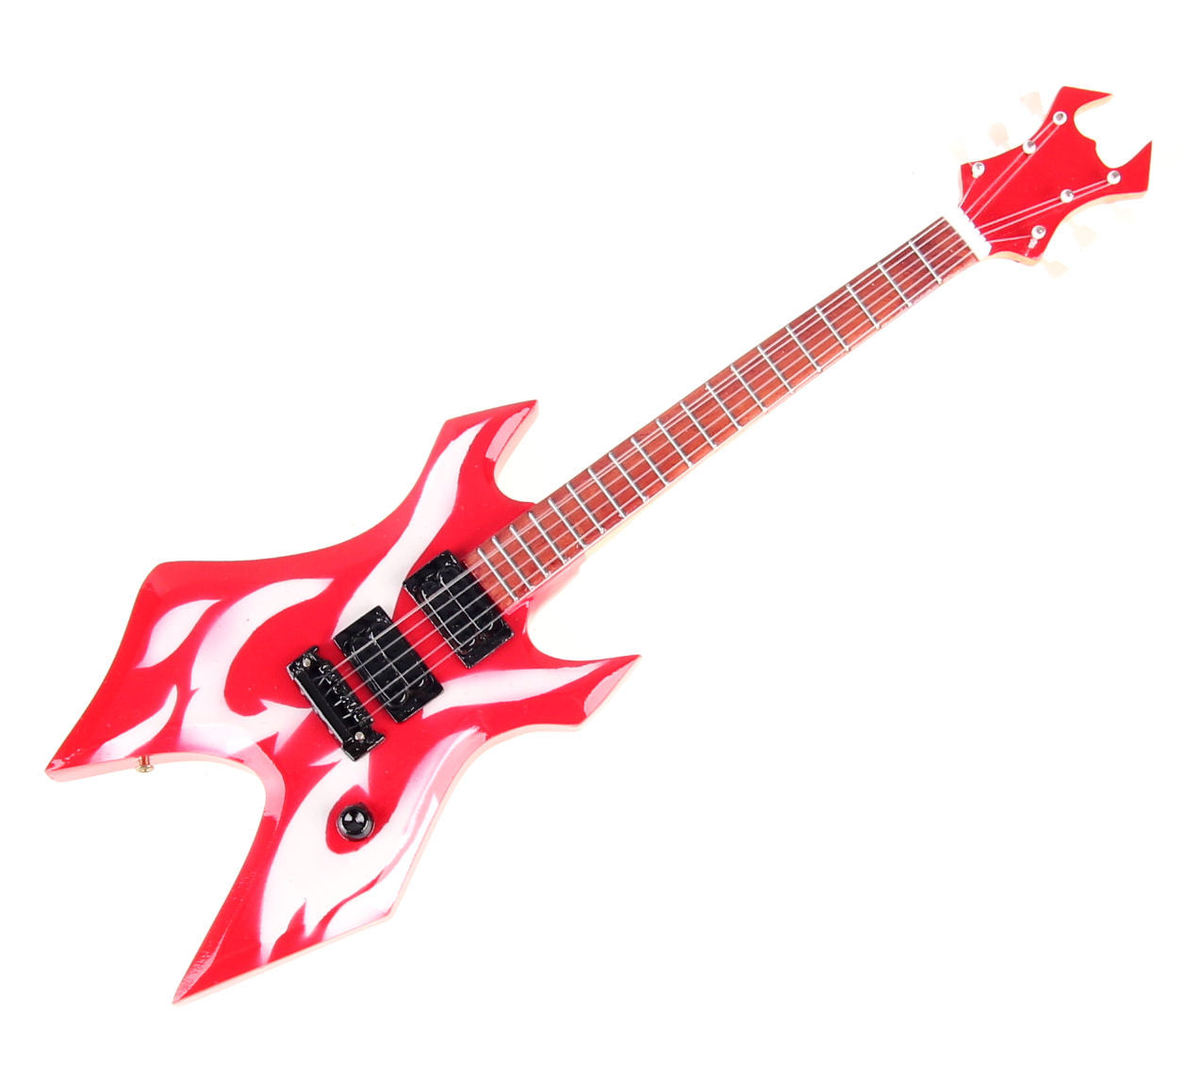 kytara Slayer - Kerry King - Beast KK Wartribe - Red/White - MGT-0321